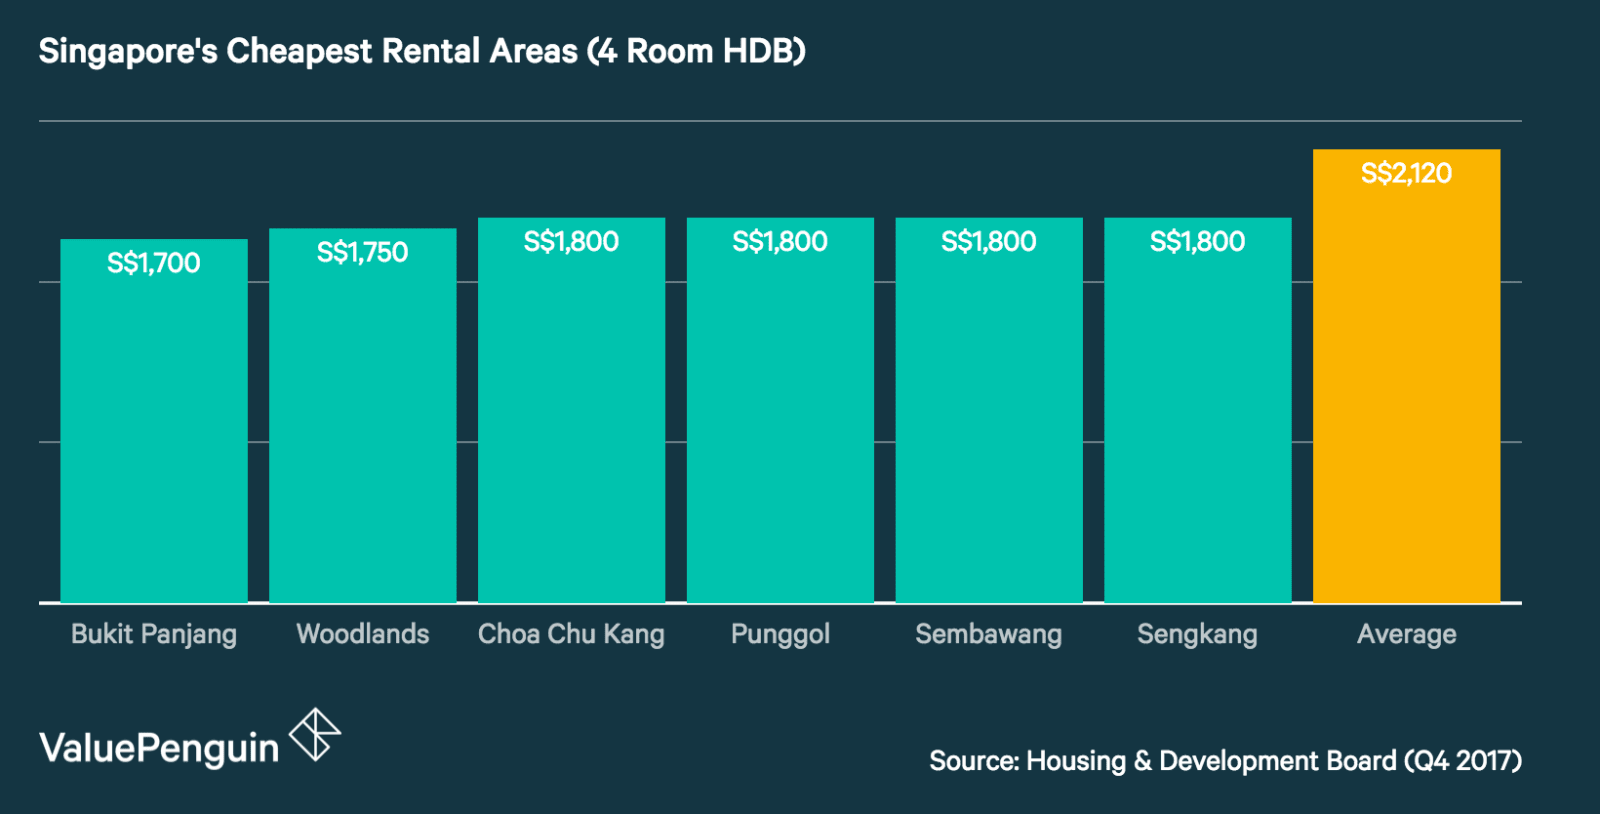 Cheapest Rental Areas in Singapore (4 Room HDB)